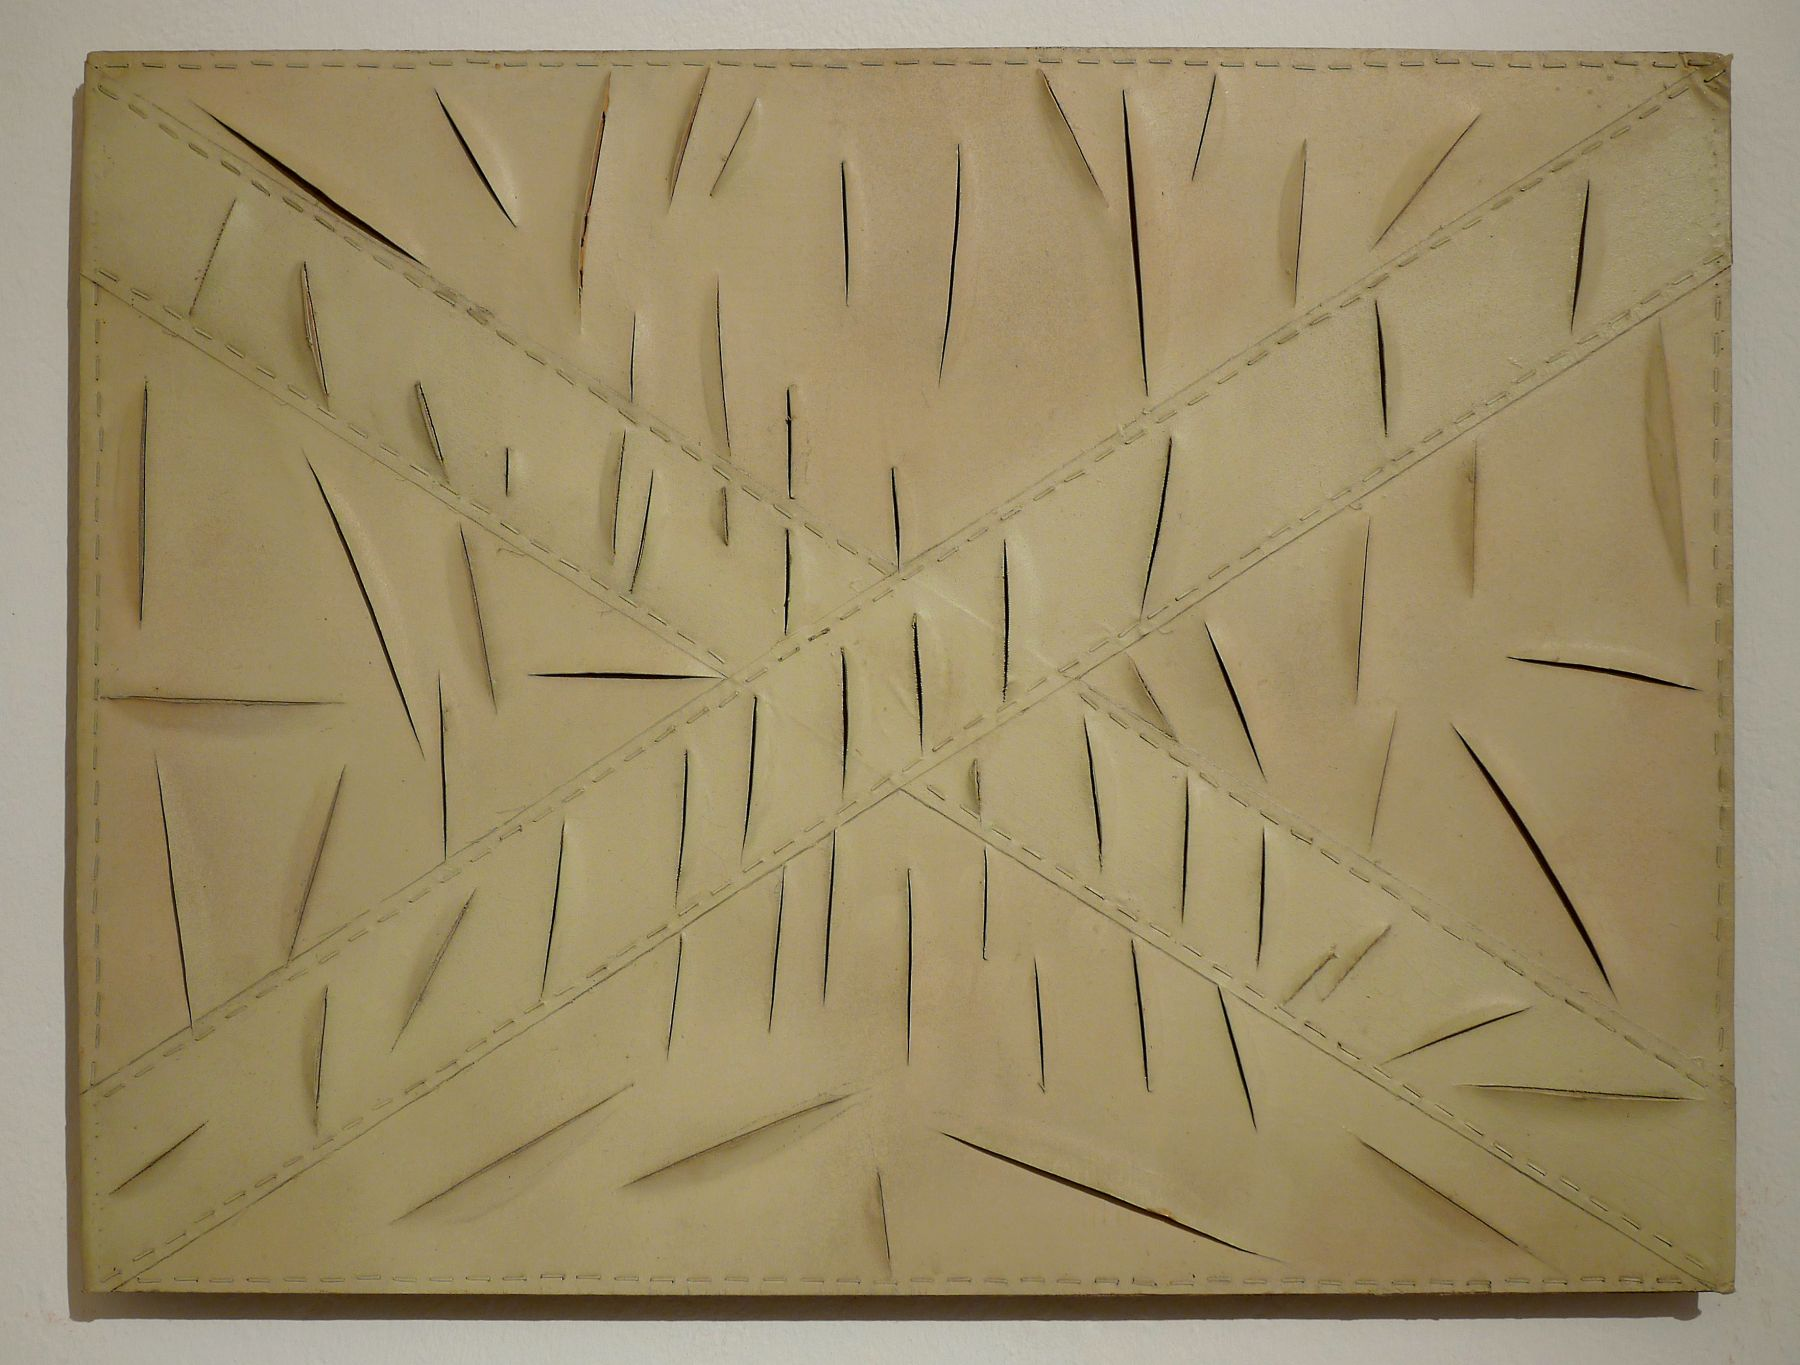 a painting with slashes by italian artist salvatore scarpitta